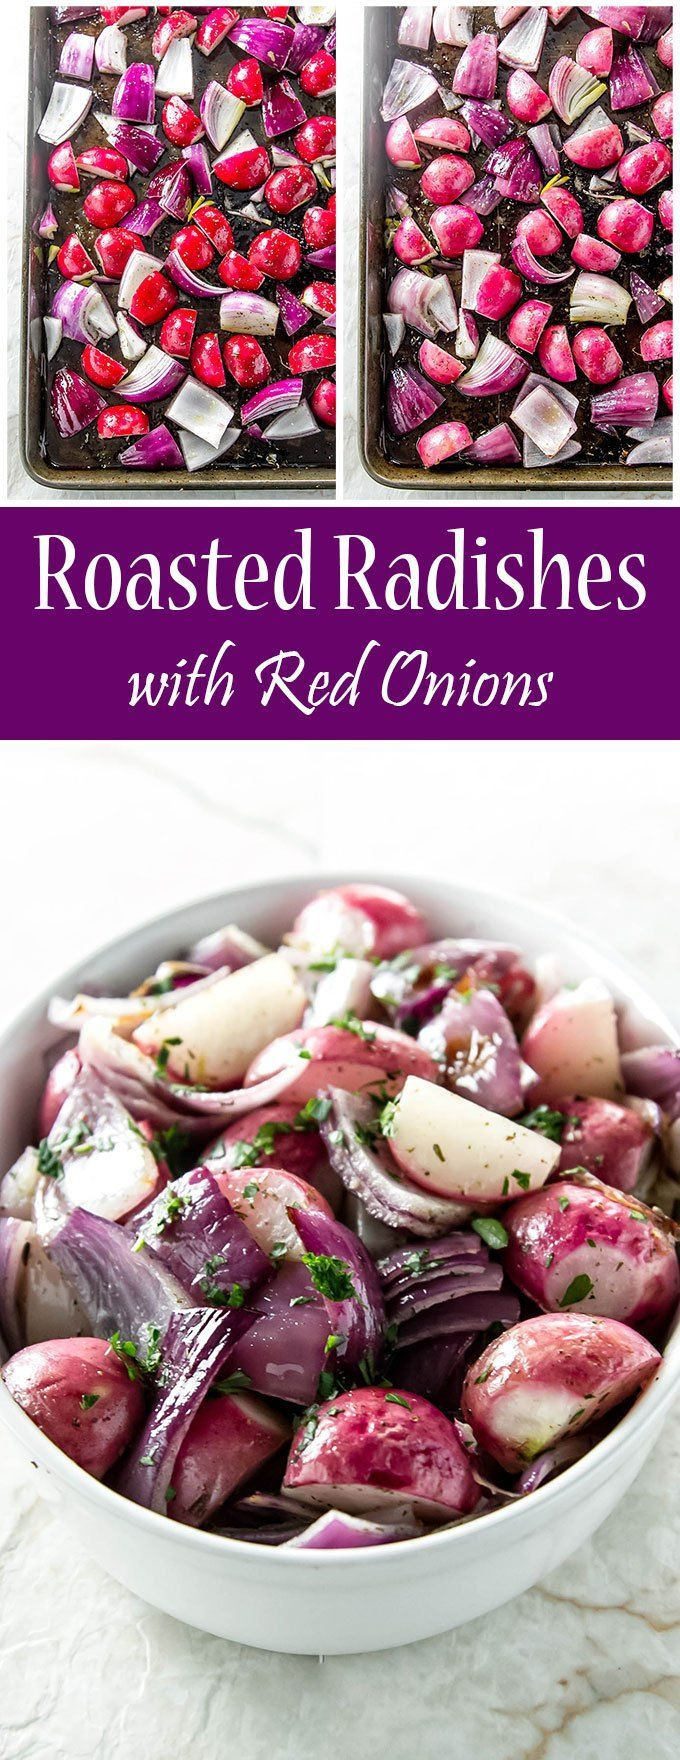 Roasted radishes with red onions is an easy side dish - perfect for weeknights or special occasions | girlgonegourmet.com